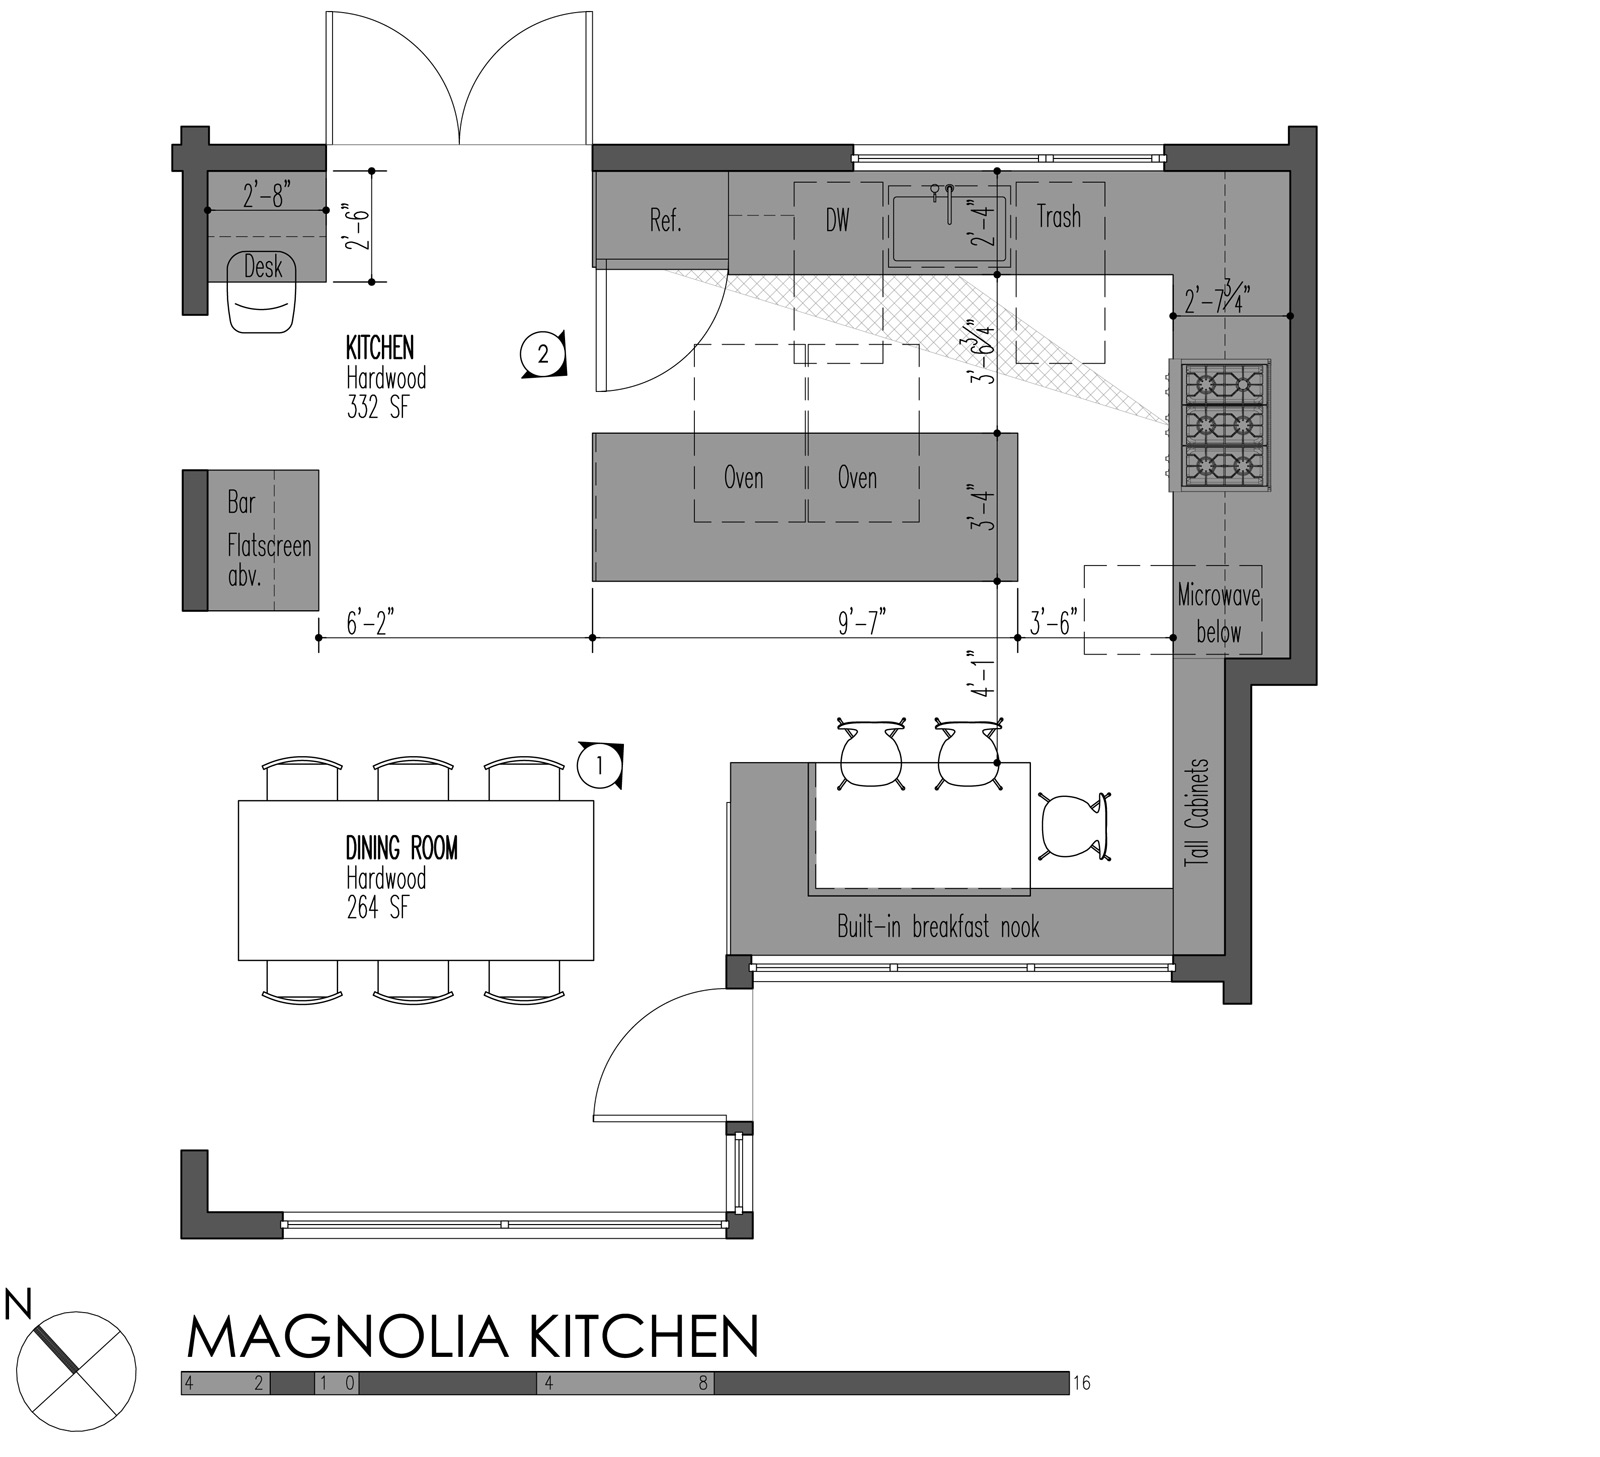 Small Kitchen Plans 5 modern kitchen designs & principles | build blog